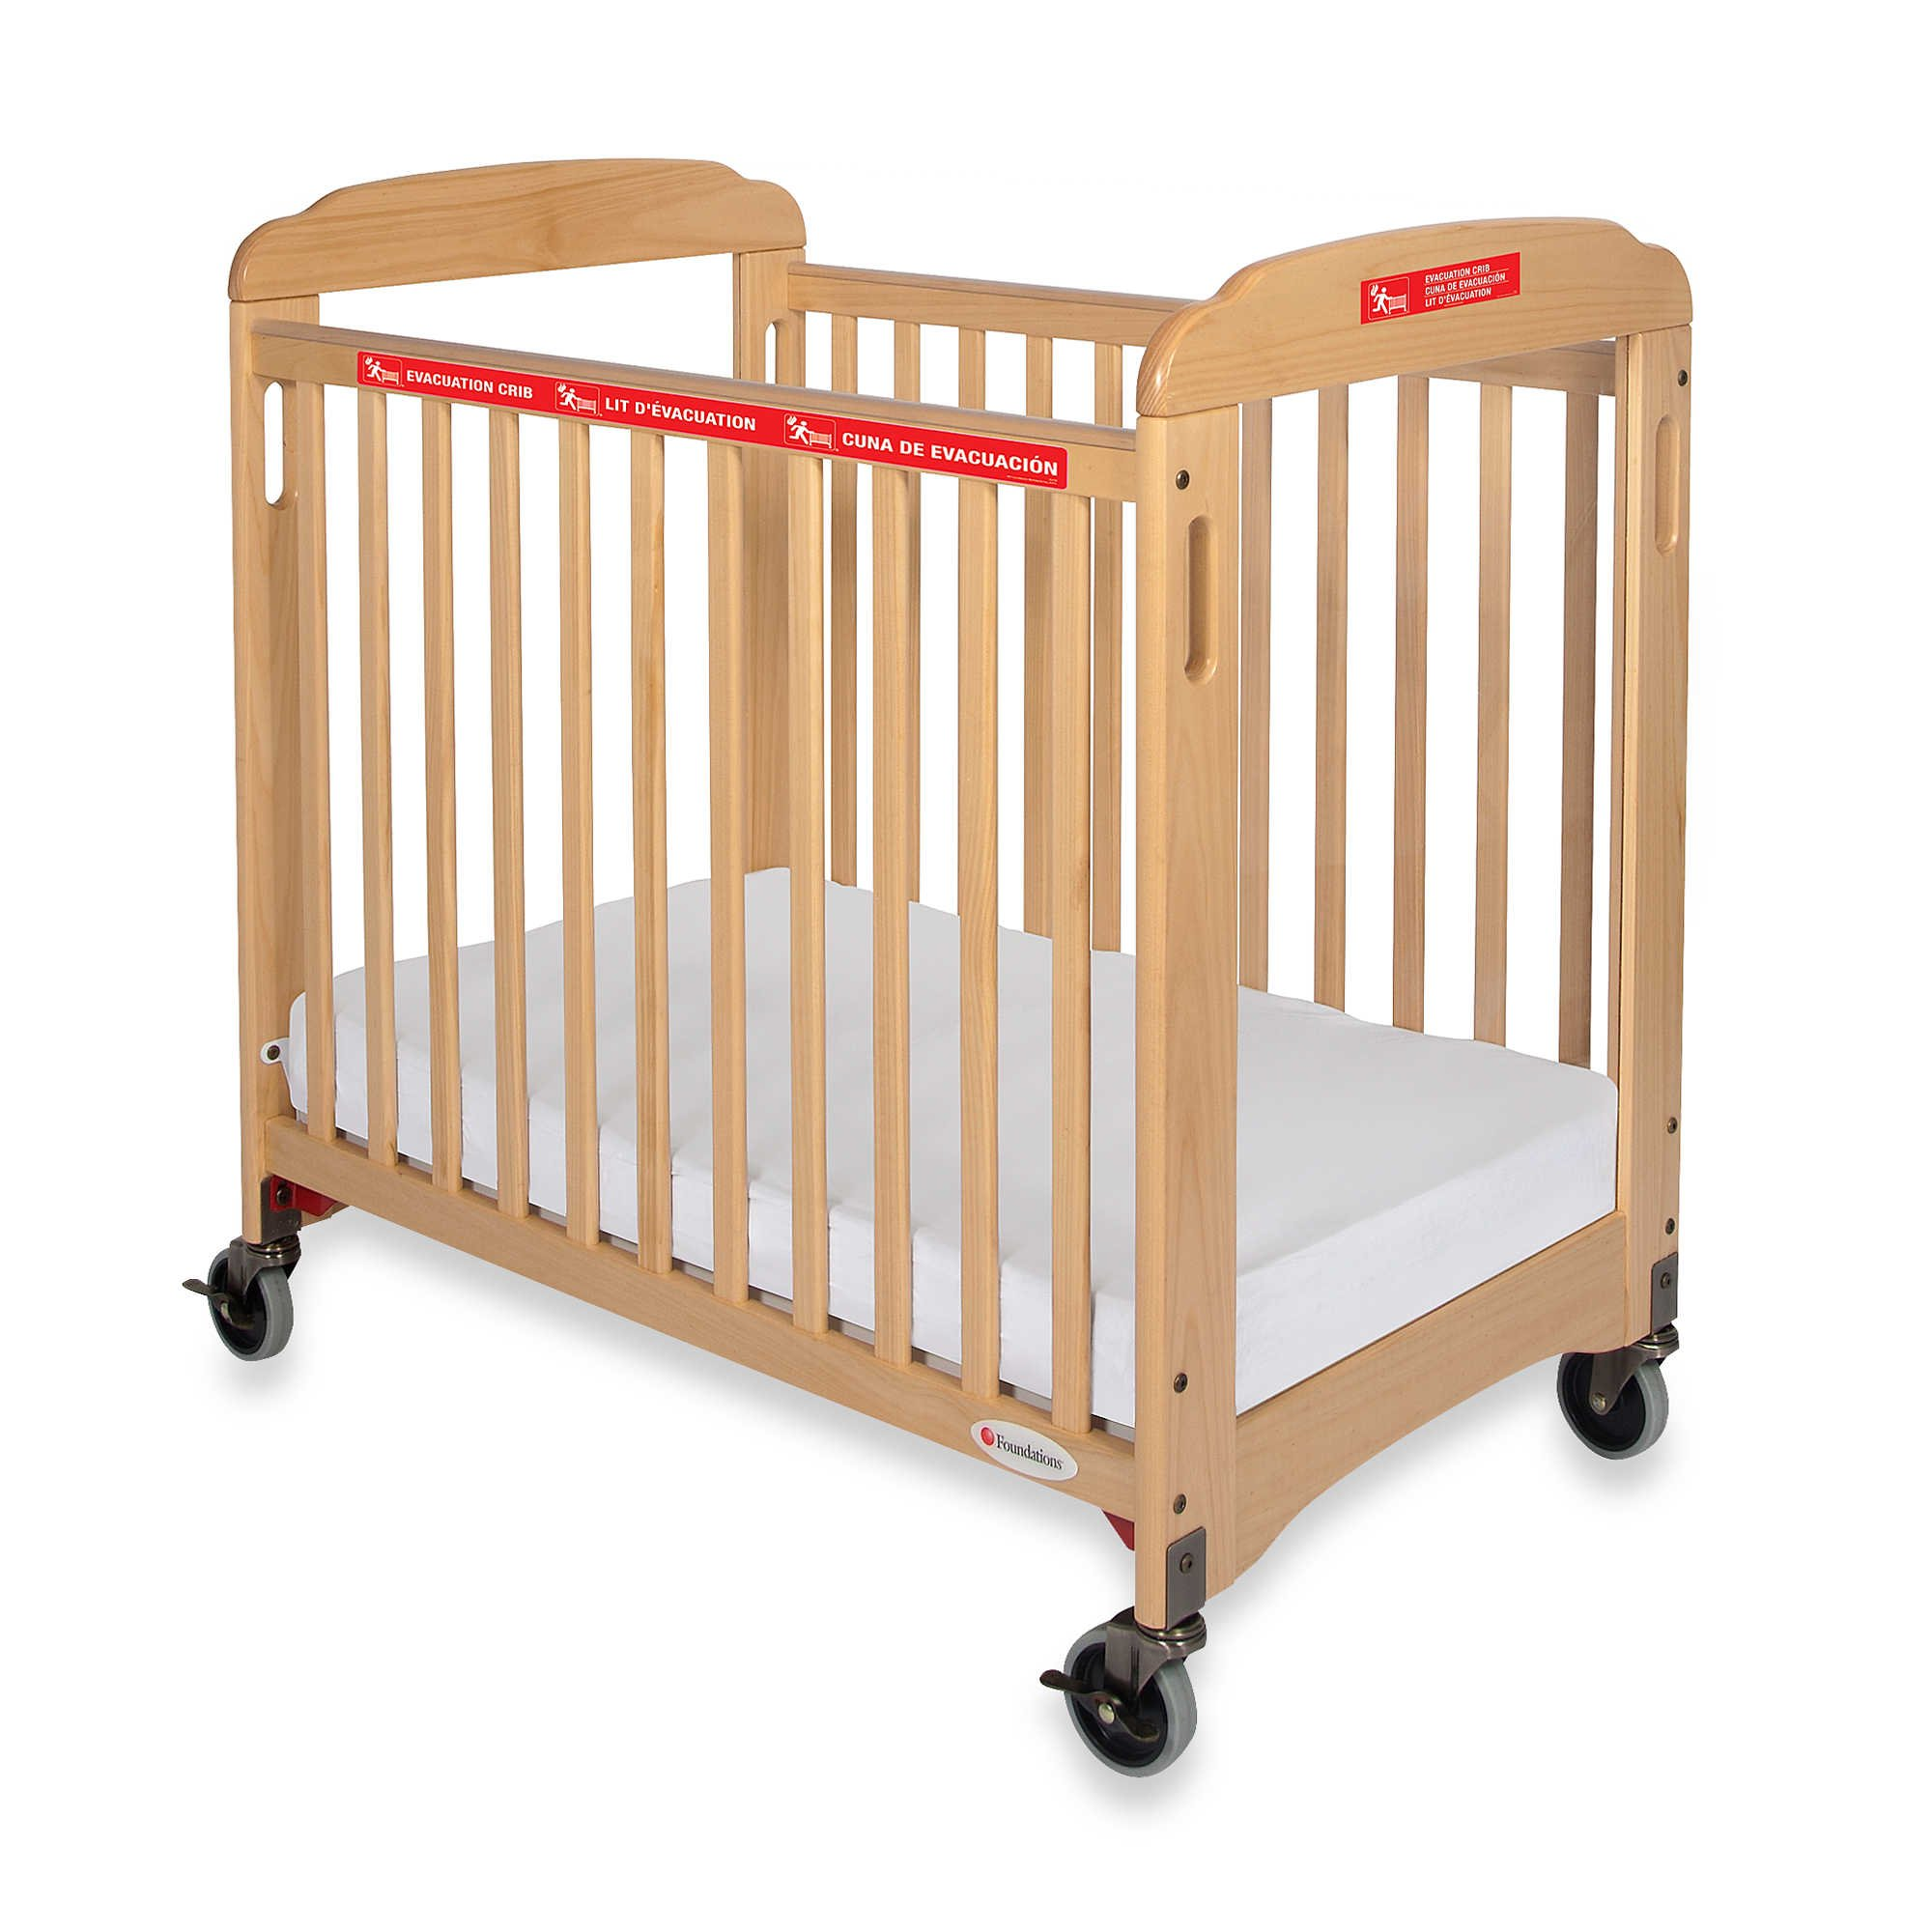 Foundations First Responder Evacuation Crib in Natural